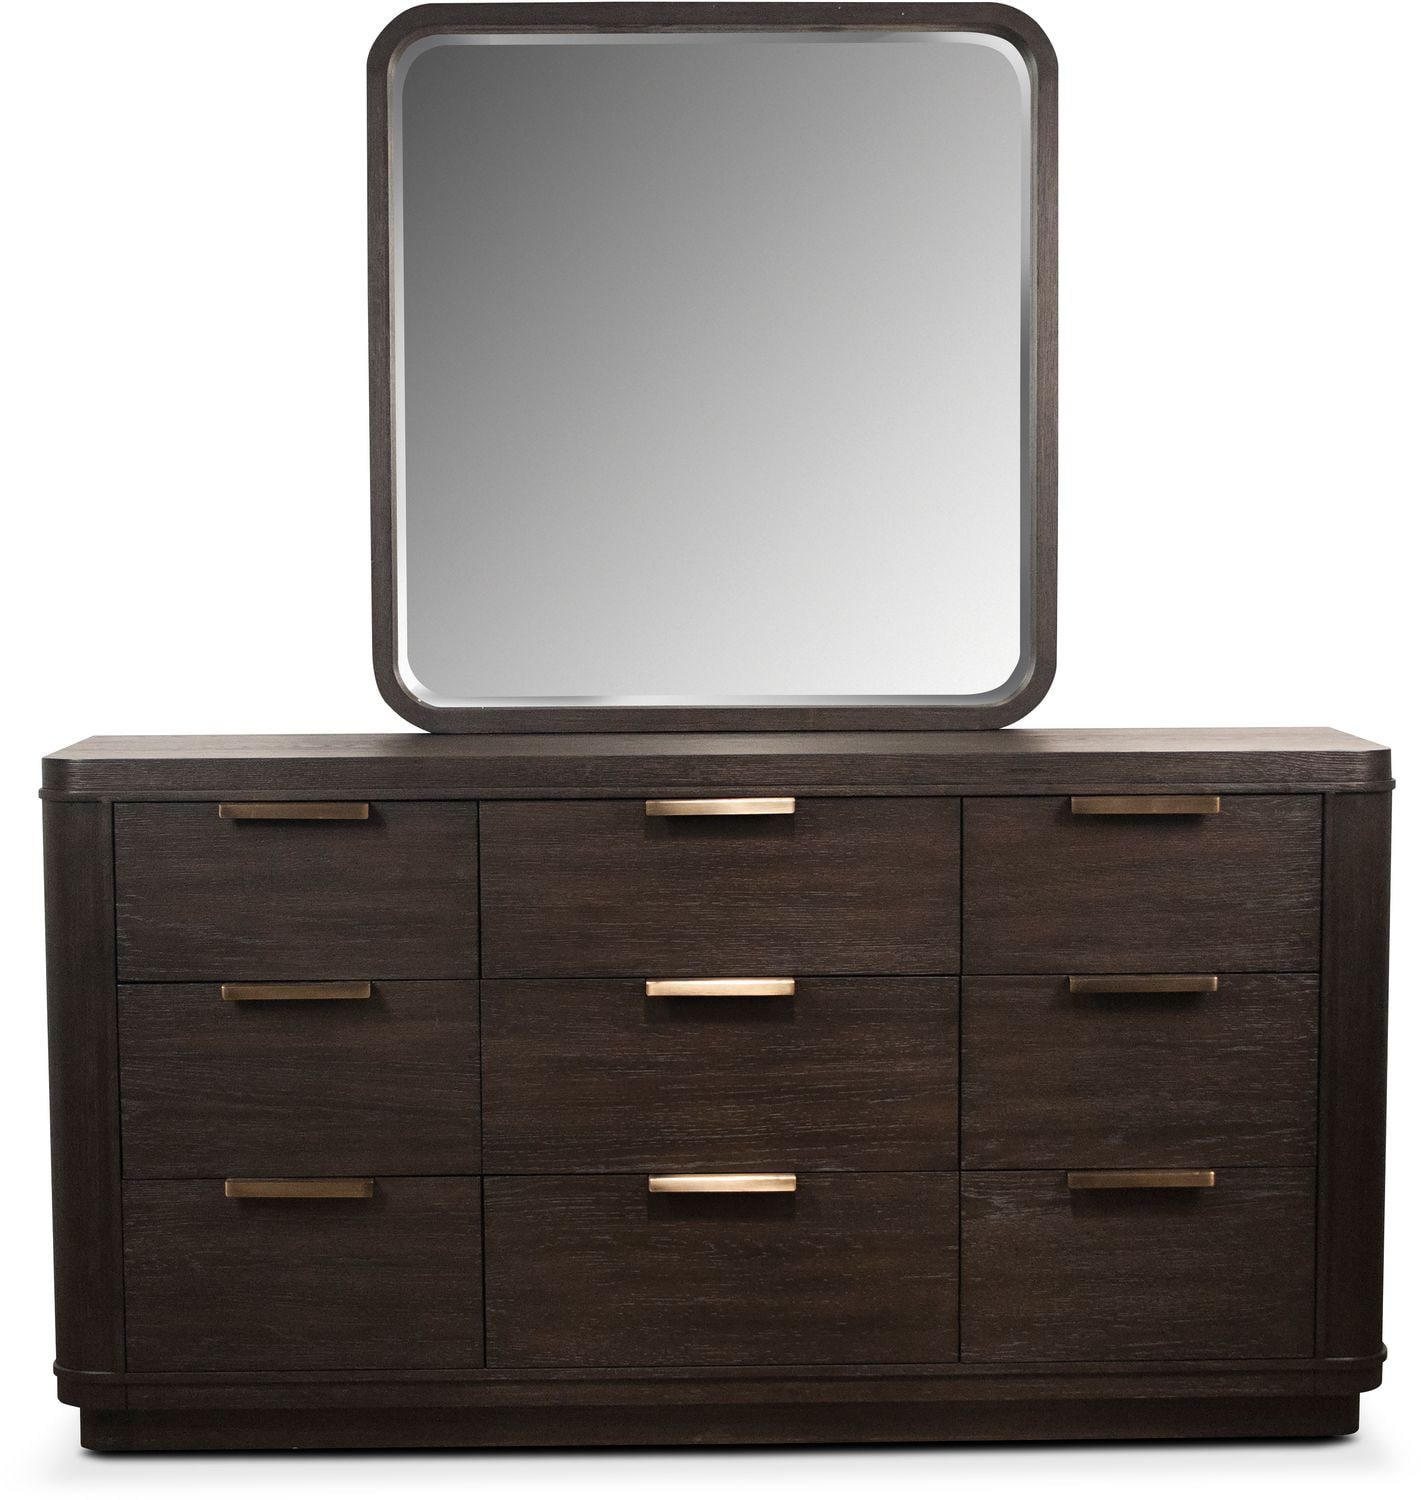 American signature tall dresser bestdressers 2017 for Signature furniture